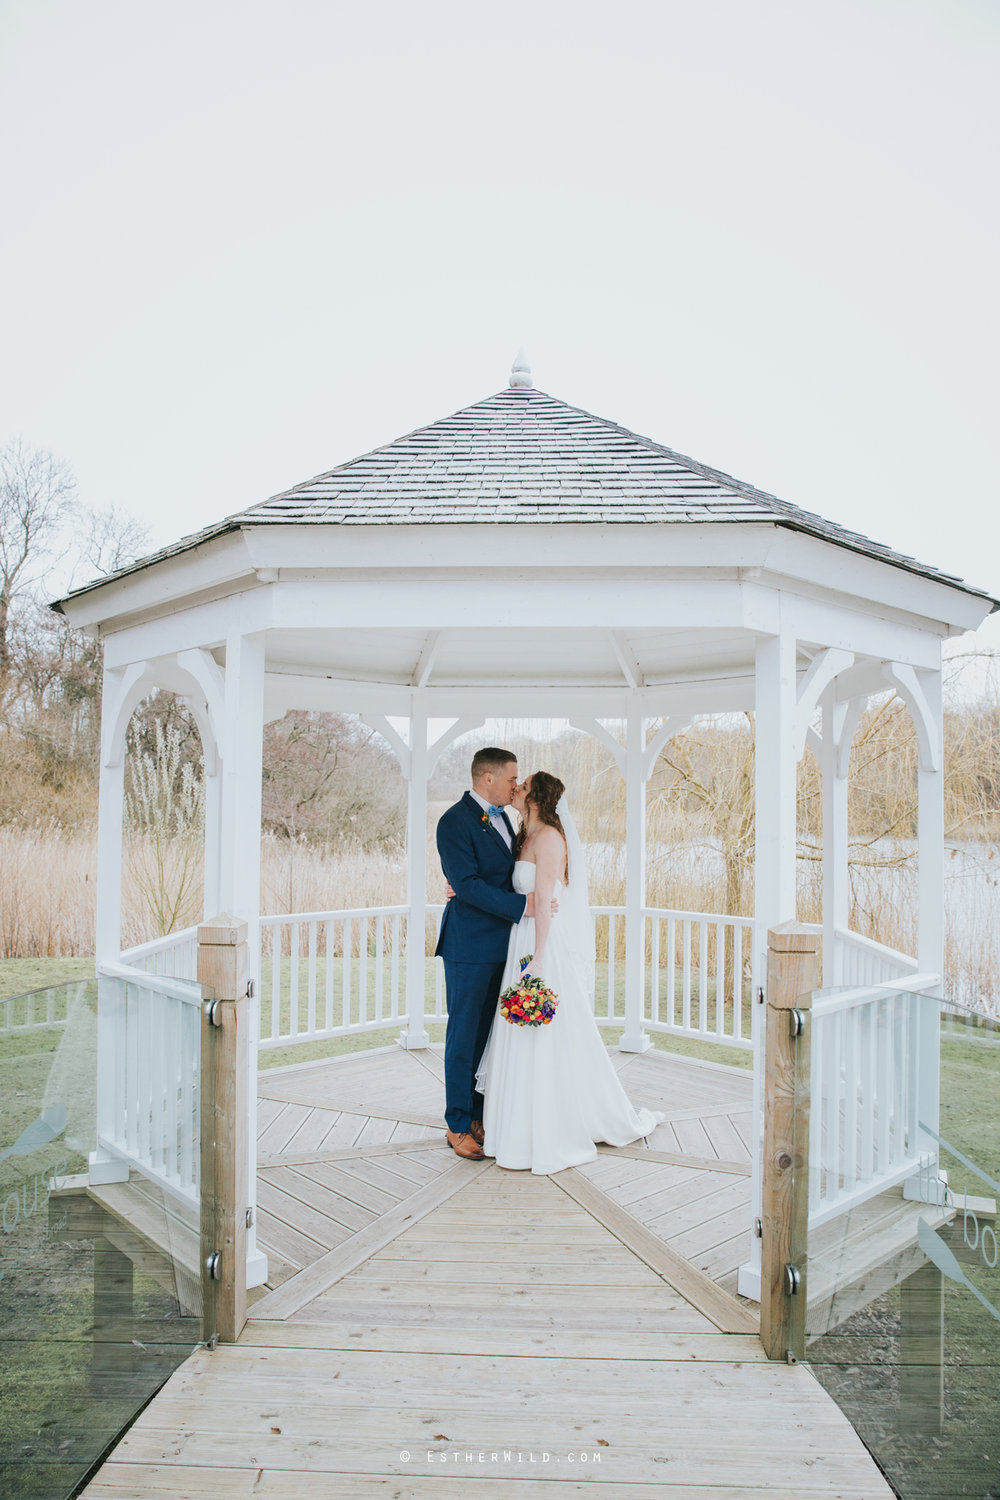 The_BoatHouse_Wedding_Venue_Ormesby_Norfolk_Broads_Boat_Wedding_Photography_Esther_Wild_Photographer_IMG_2031.jpg